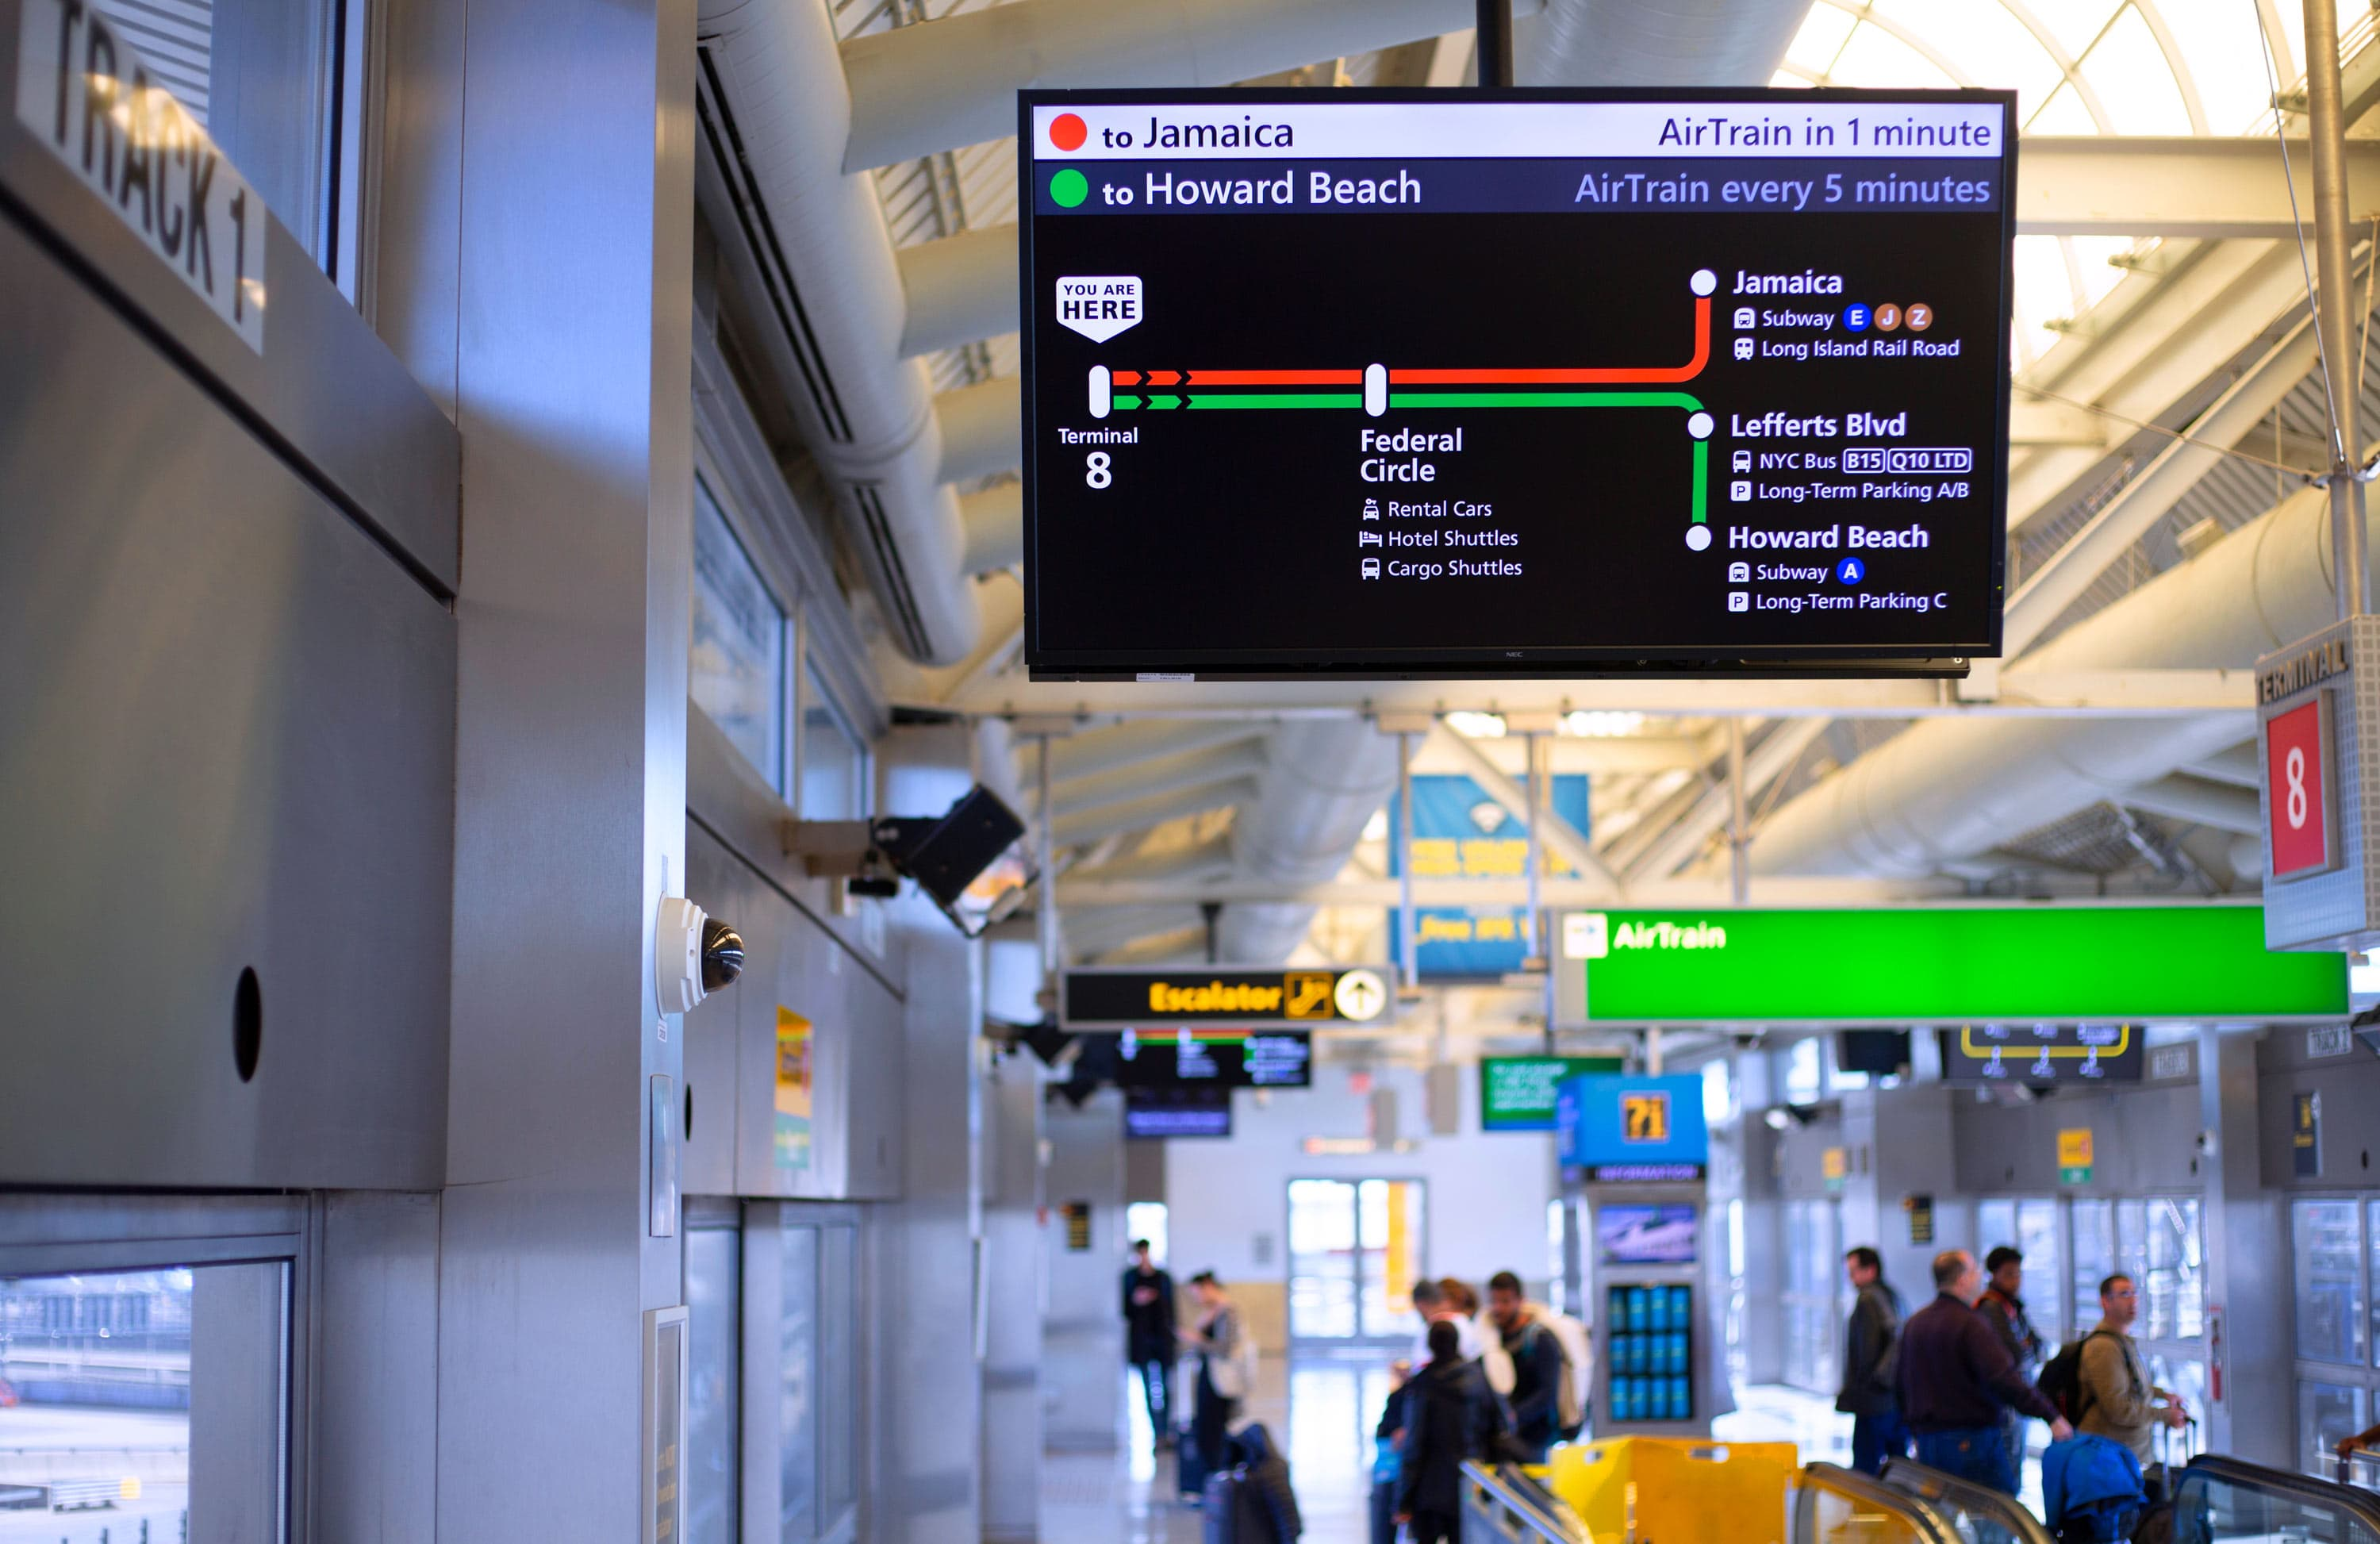 The final redesign comissioned by the agency in charge of AirTrain